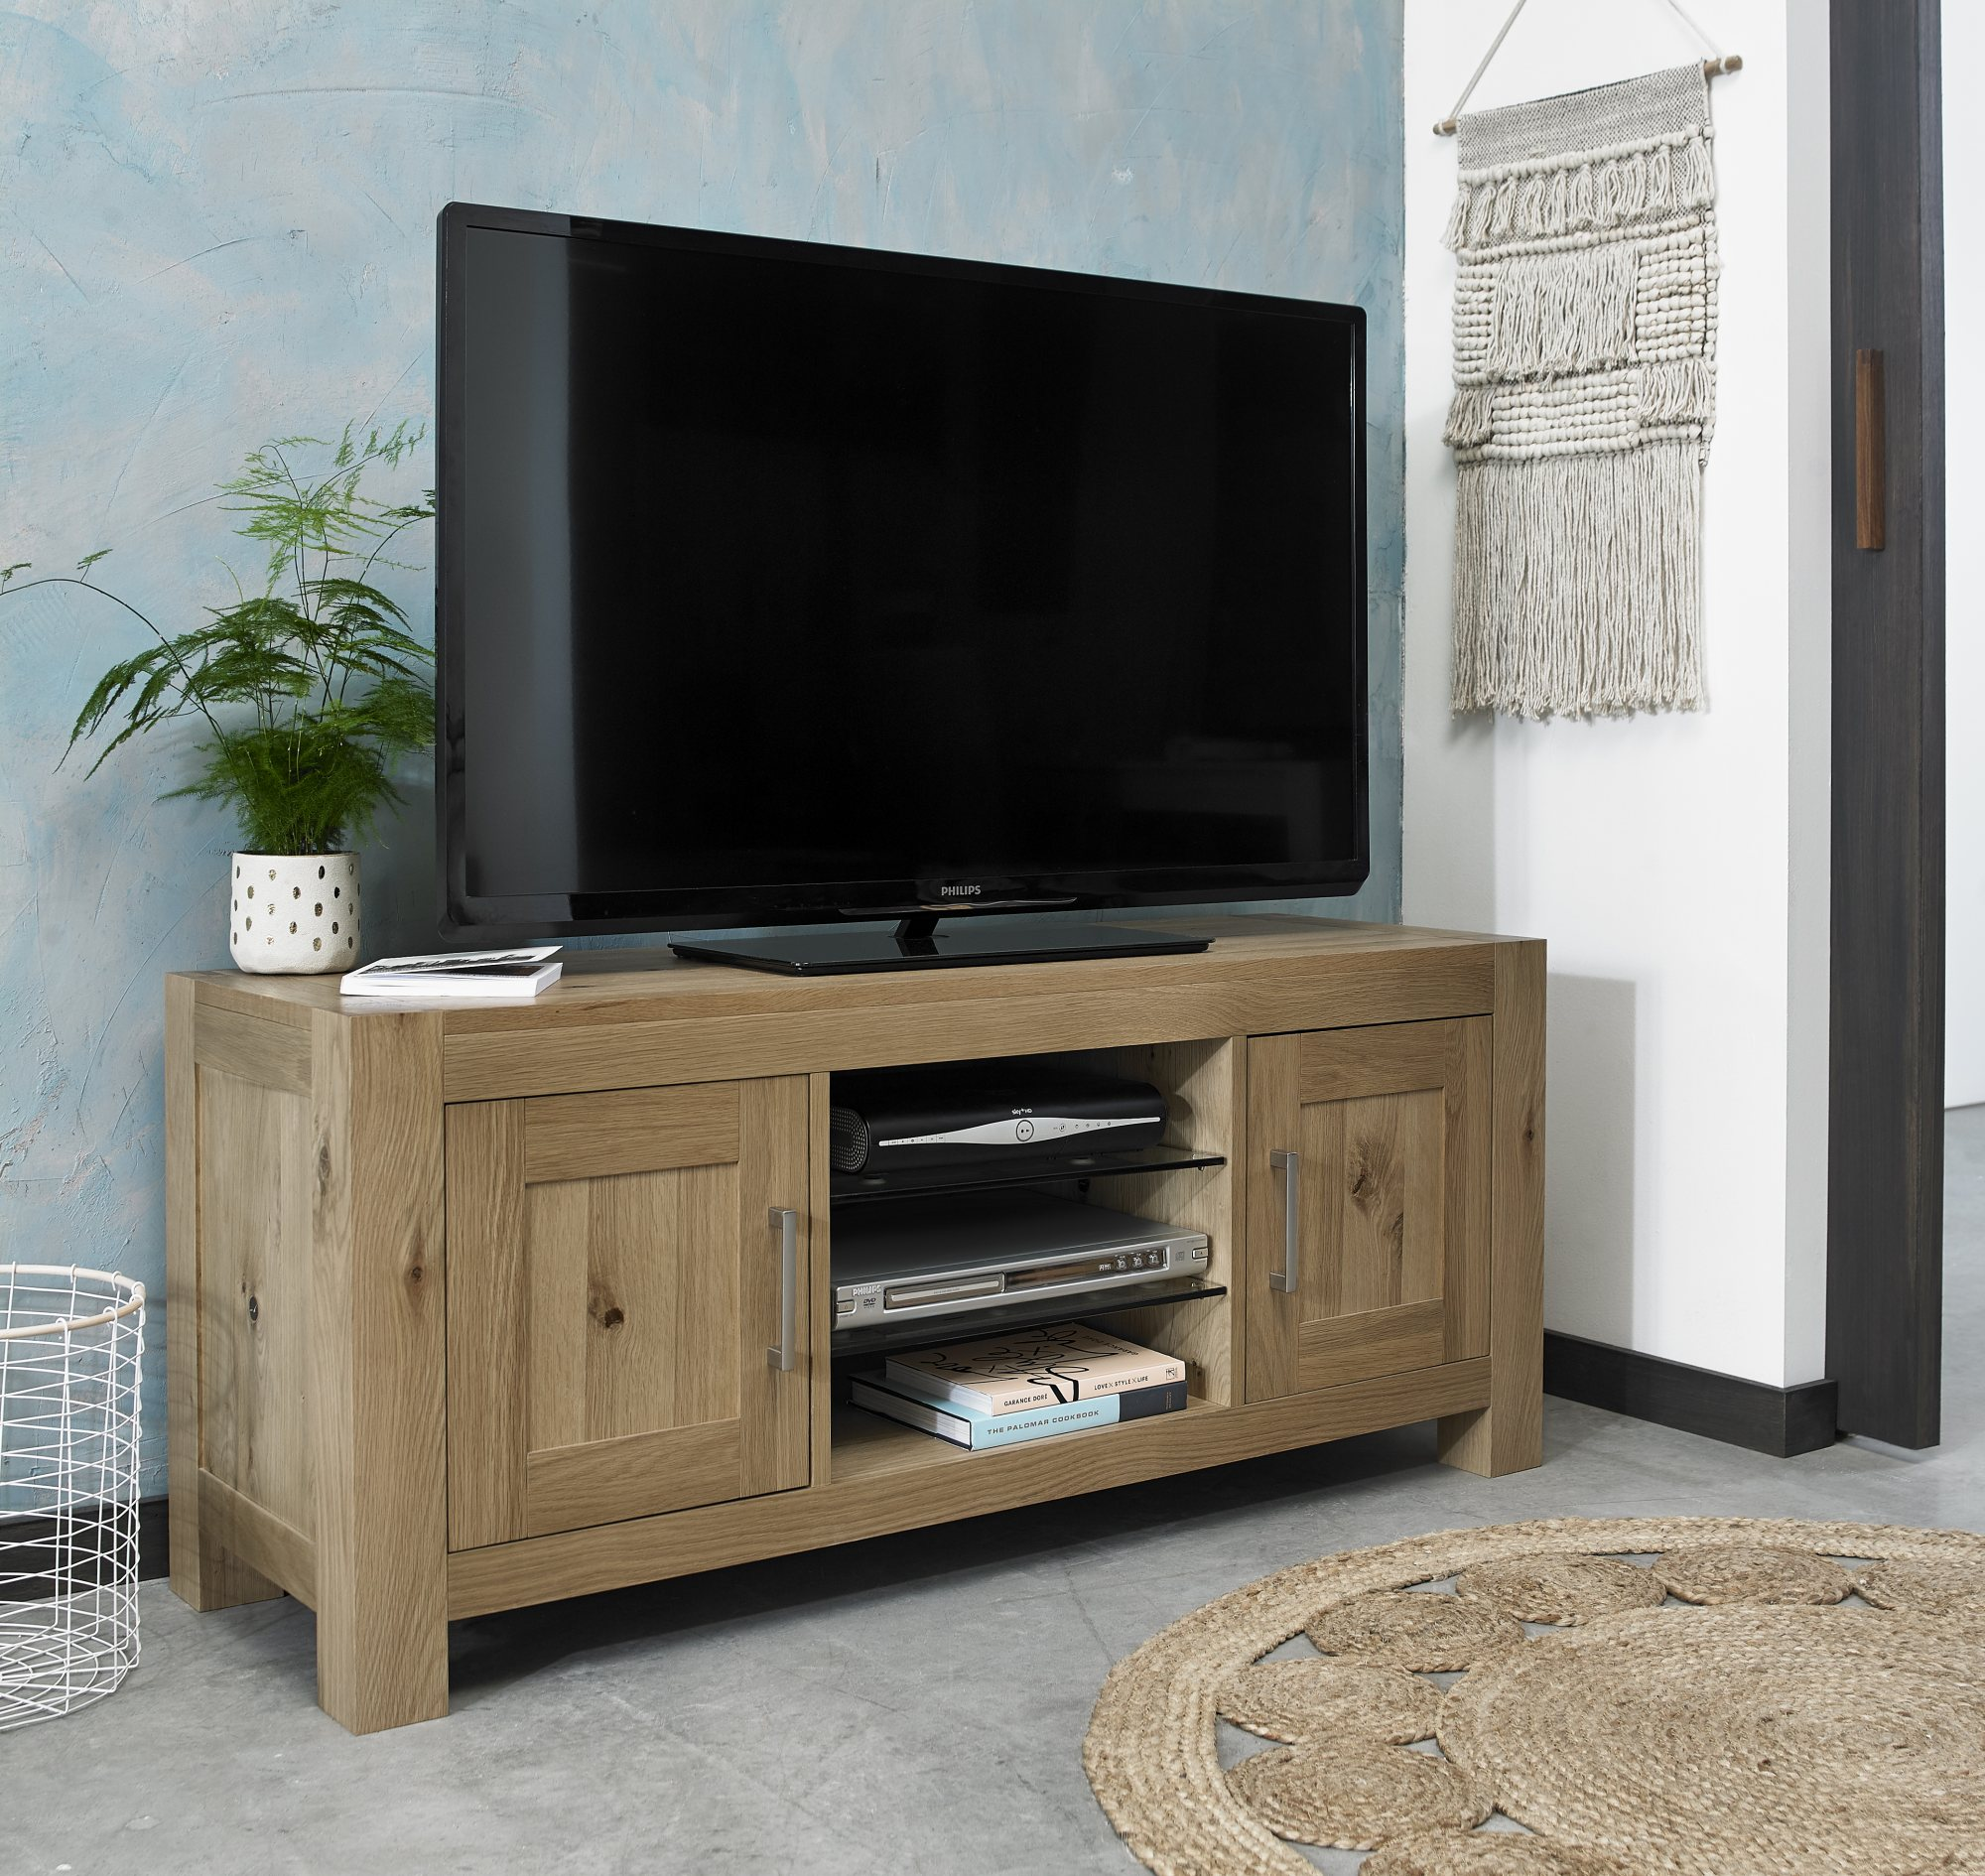 LILLE OAK TV UNIT - L135cm x D44cm x H57cm